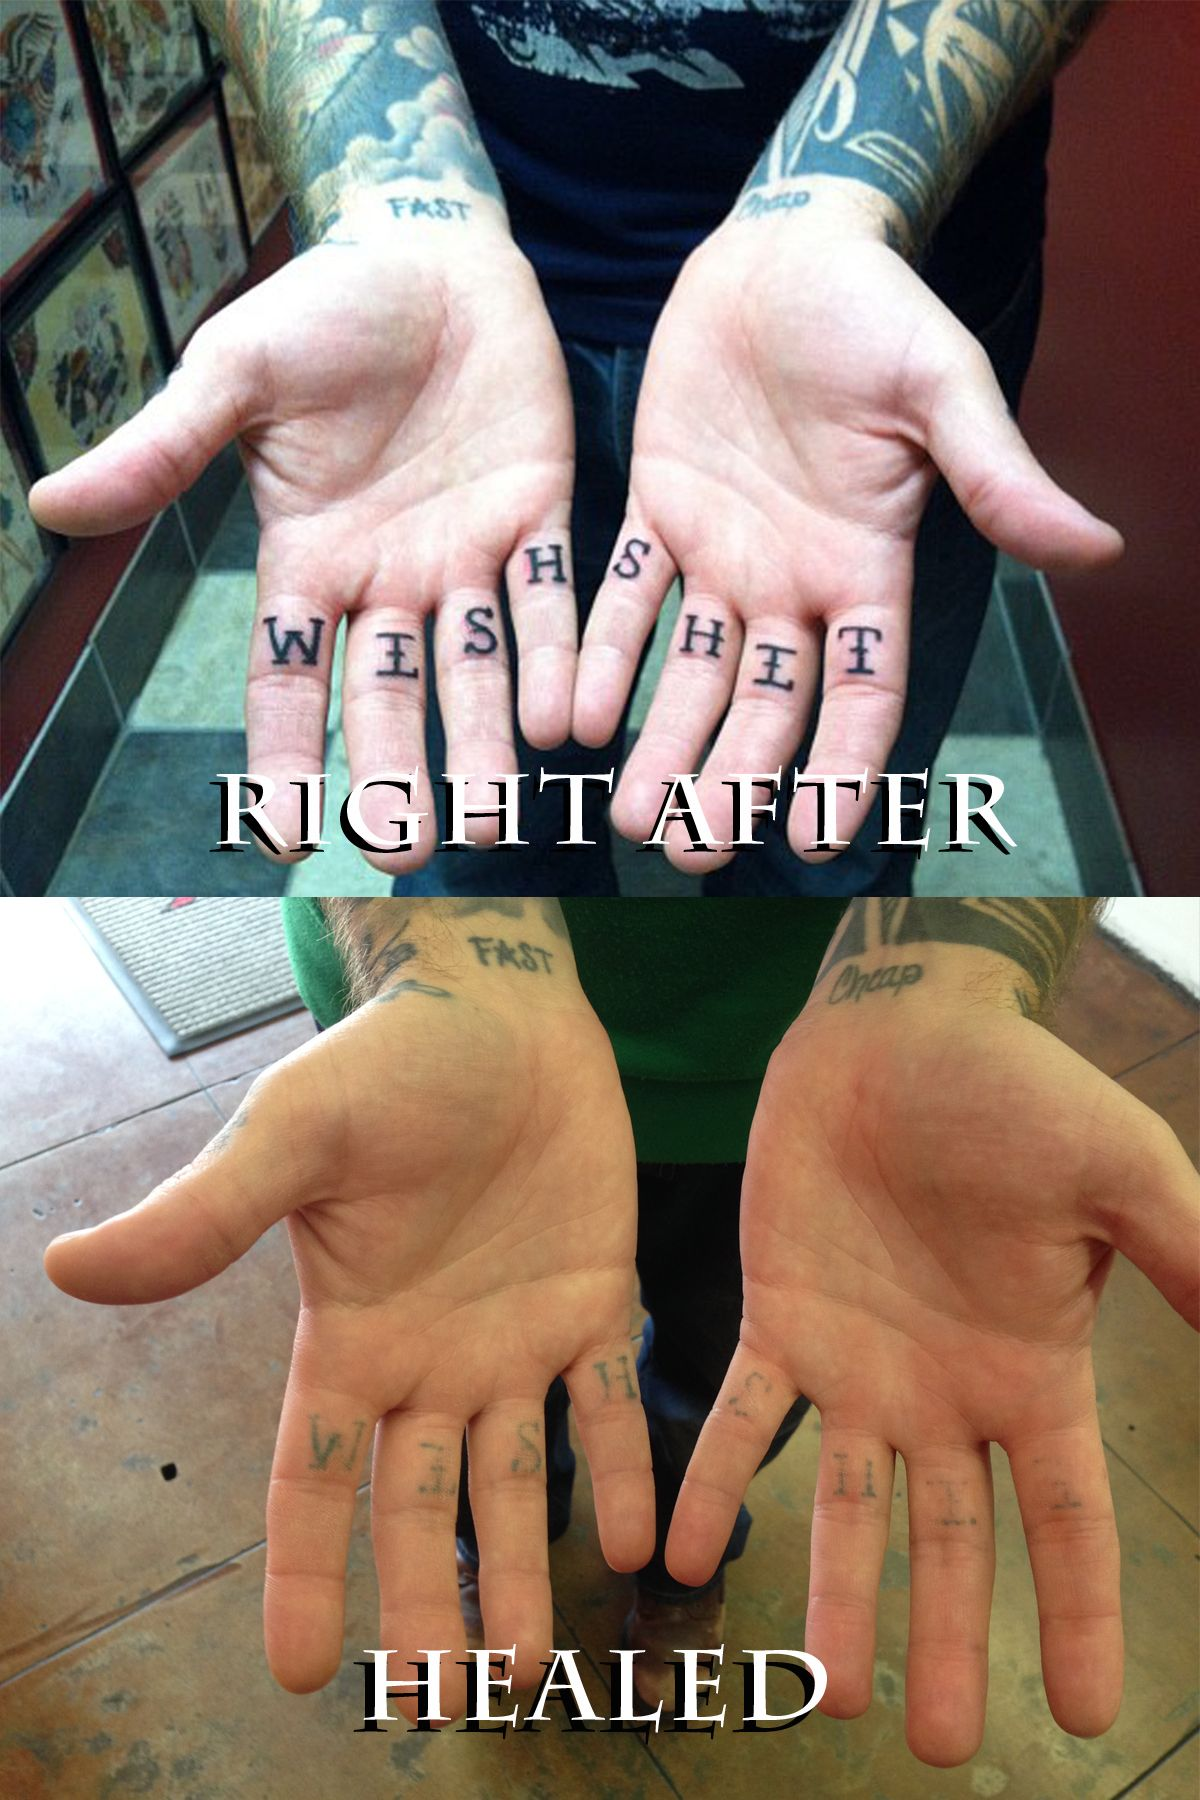 finger tattoos don't heal | Finger Tattoo | Pinterest ...